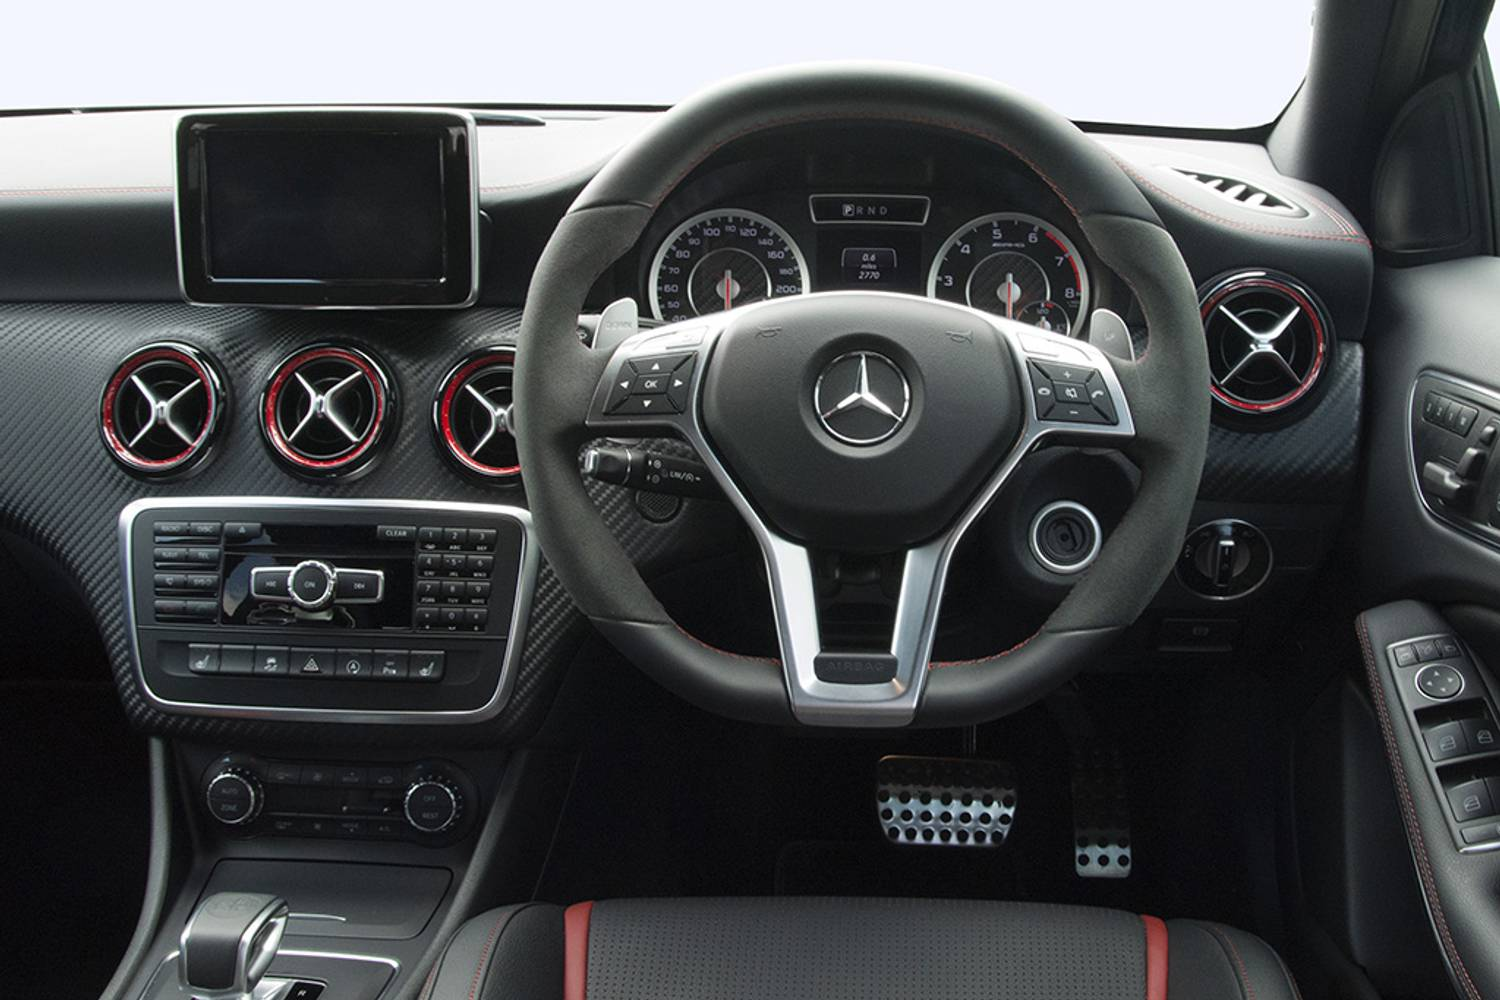 new mercedes benz a class amg hatchback a45 4matic premium 5 door auto 2015 for sale. Black Bedroom Furniture Sets. Home Design Ideas